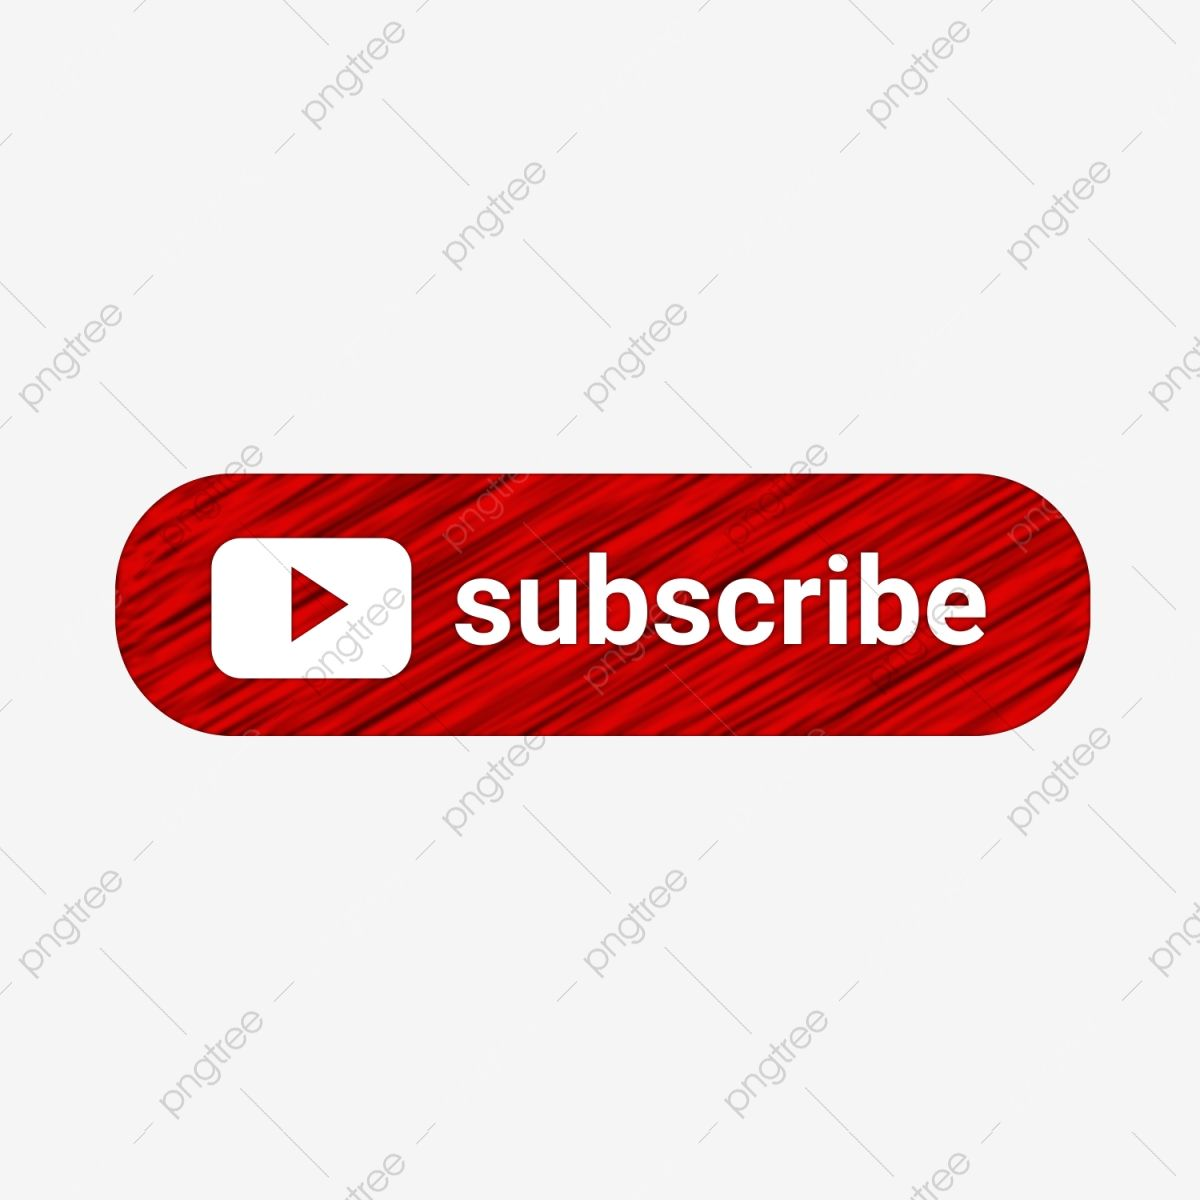 Youtube Subscribe Png Transparent Background Youtube Youtube Logo Youtube Subscribe Png Transparent Youtube Logo Video Design Youtube Youtube Banner Design